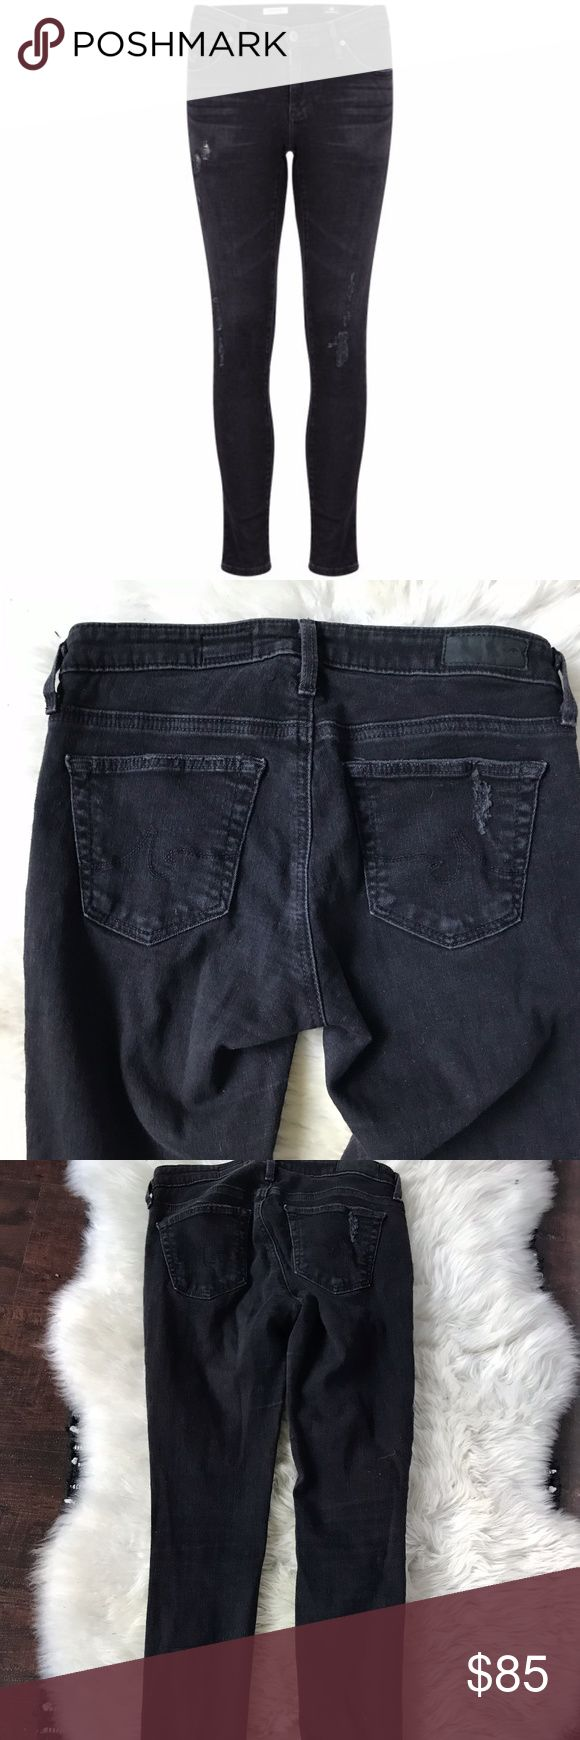 "AG Adriano Goldschmied Legging Ankle Jeans 25 AG Adriano Goldschmied Legging Ankle Jeans in Emerse SZ 25  Only worn a few times.   98% cotton , 2% elastane 12"" in the knee narrows to 10"" at the leg opening Slightly distressed areas Ag Adriano Goldschmied Jeans Skinny"